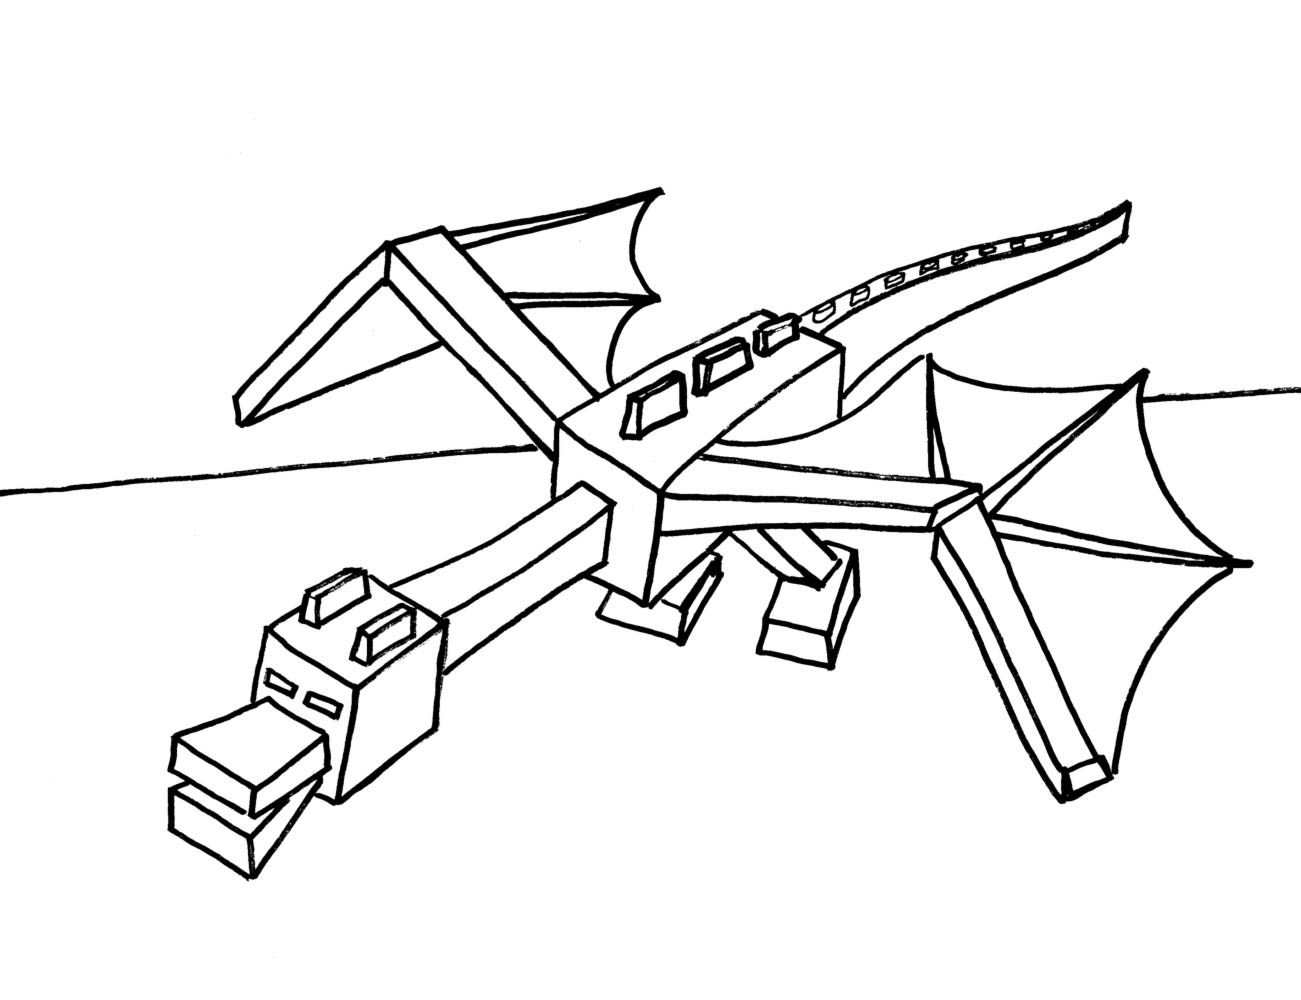 Minecraft Dragon Printable Coloring Pages Printable Shelter Minecraft Coloring Pages Dragon Coloring Page Printable Coloring Pages